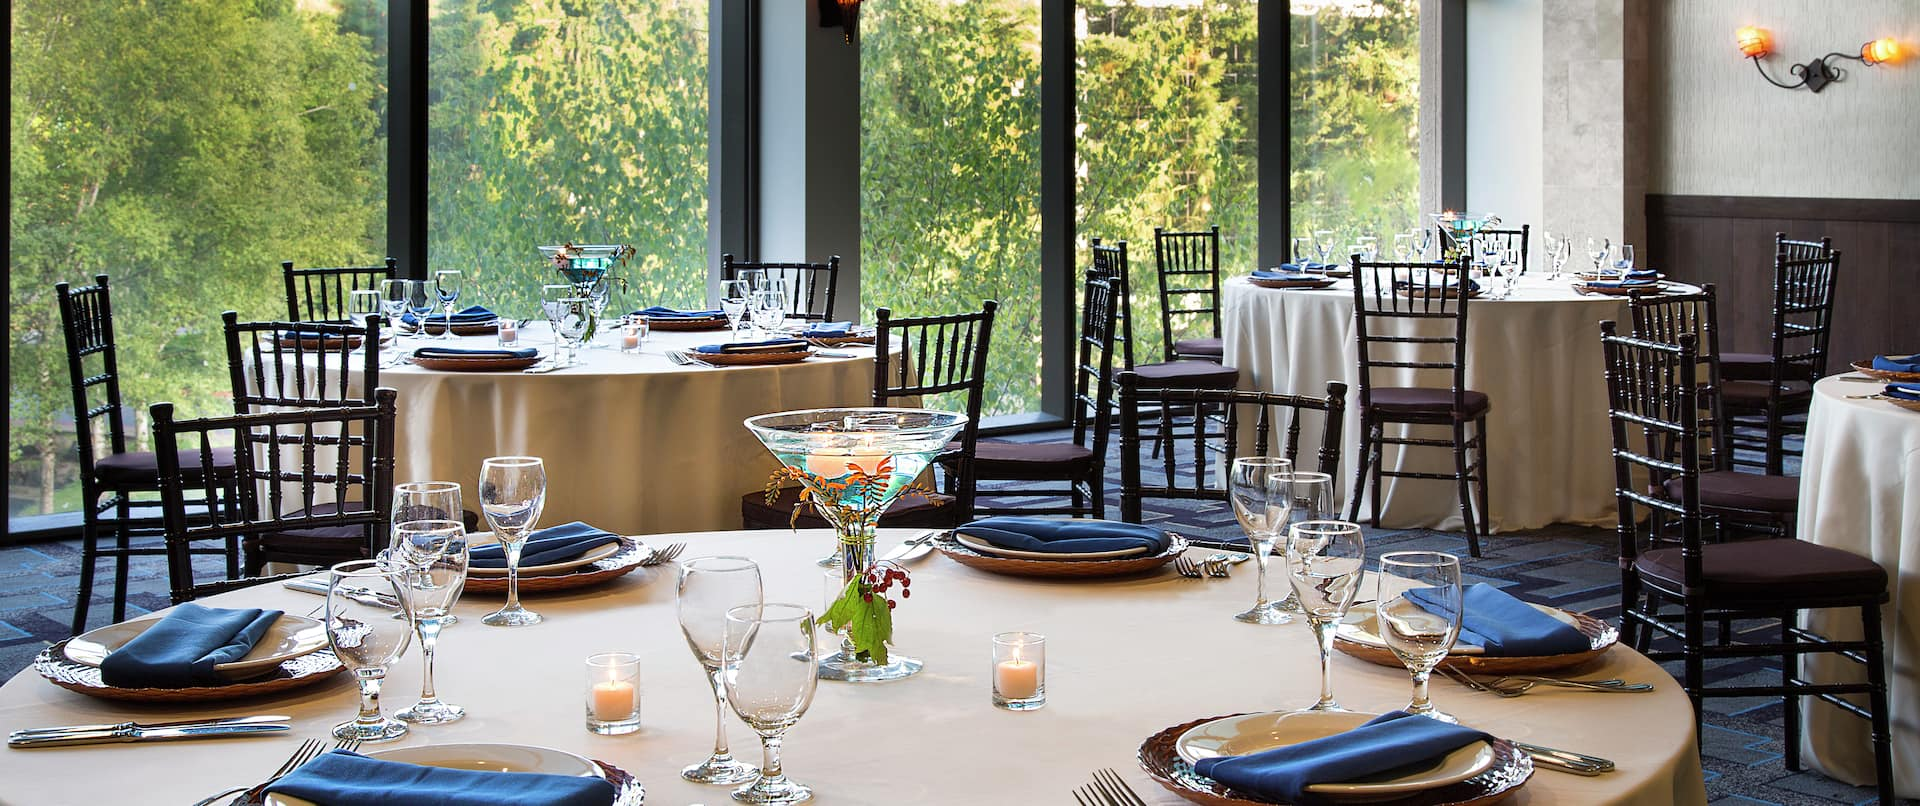 Vancouver Meeting Room Banquet Tables and Floor-To-Ceiling Windows